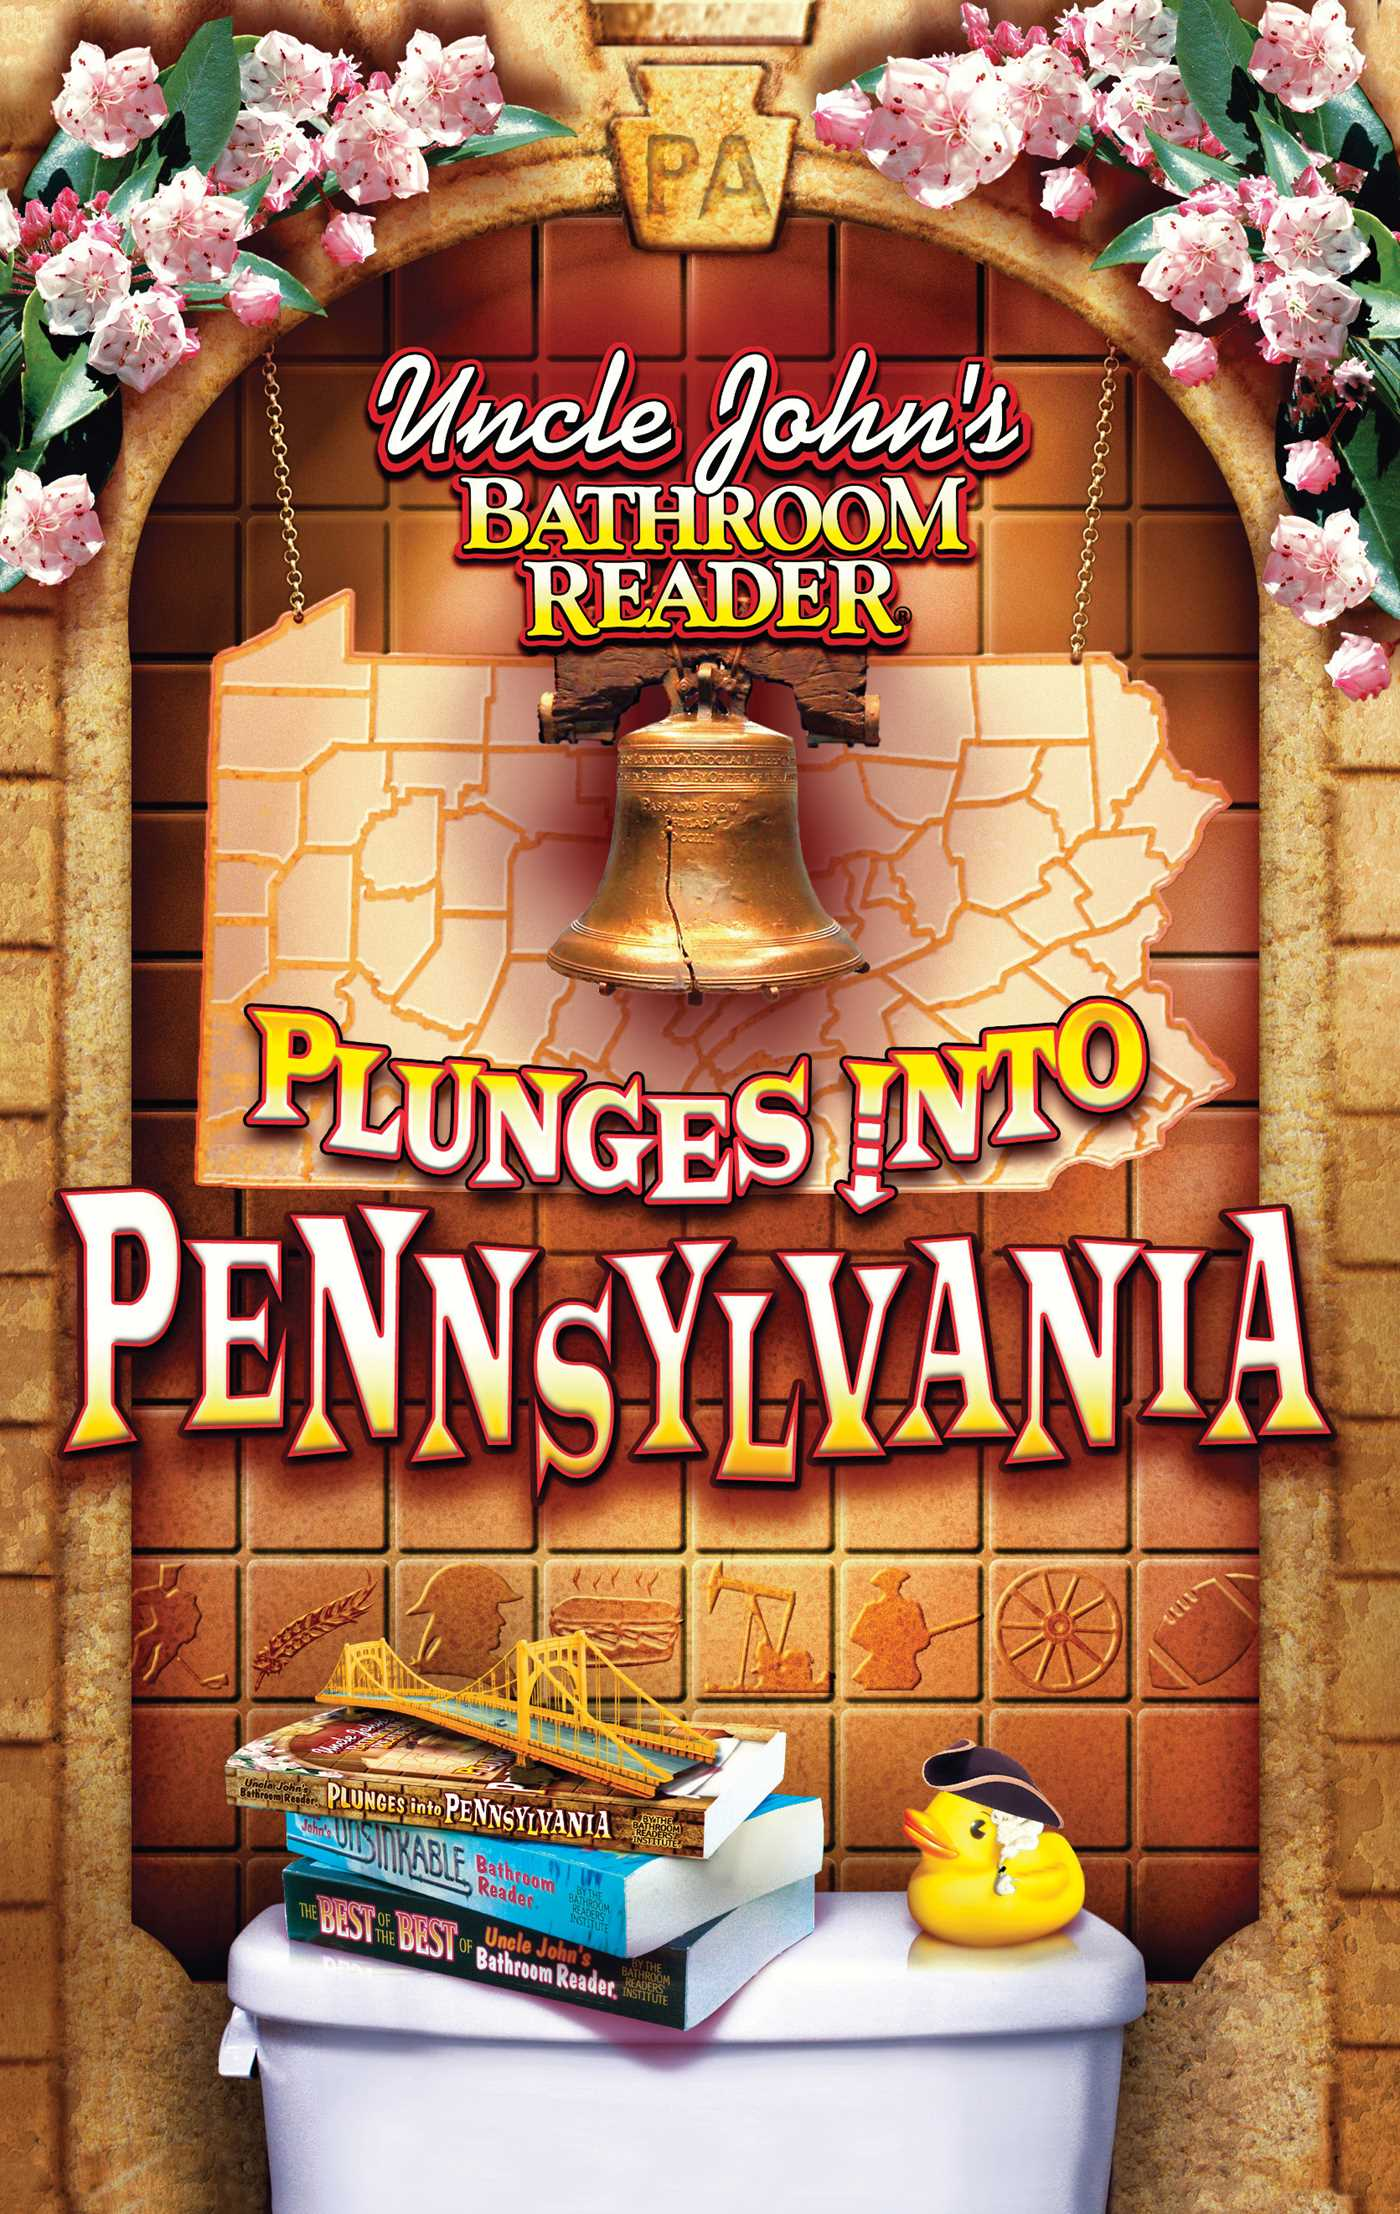 Book Cover Image (jpg): Uncle John's Bathroom Reader Plunges Into  Pennsylvania